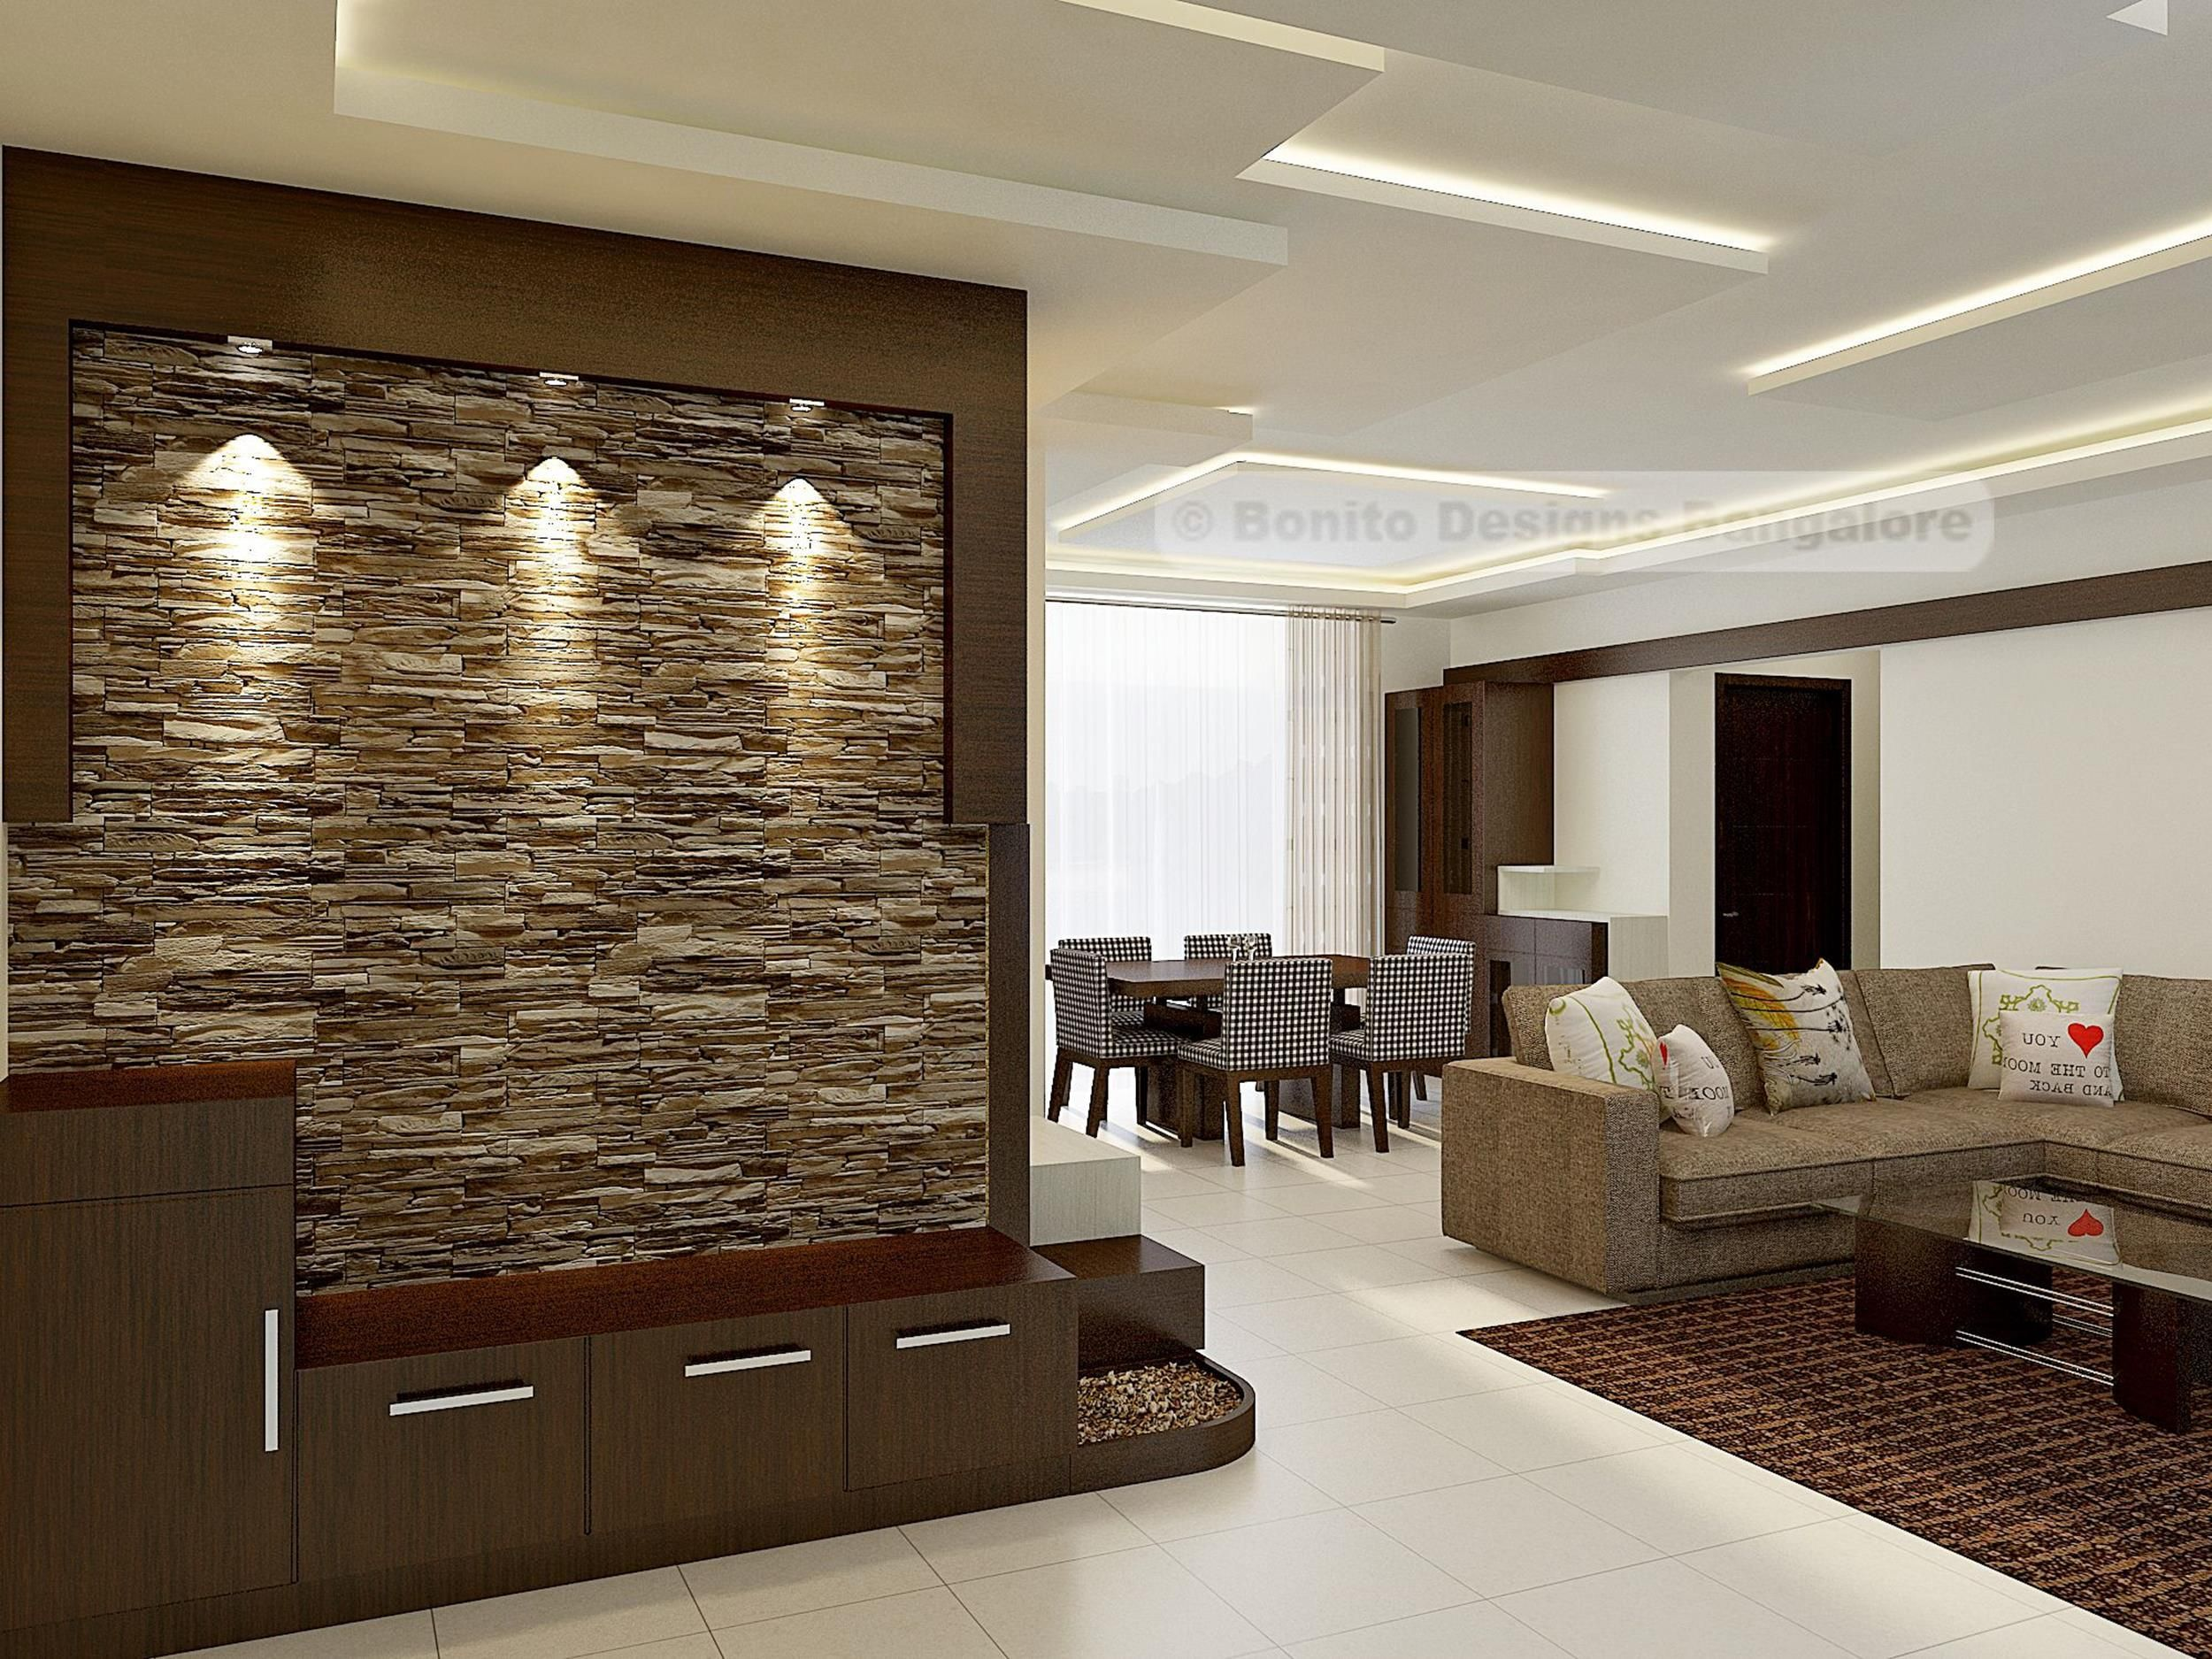 9 Perfect Living Room Smooth Stone Interior Walls Ideas - Decor